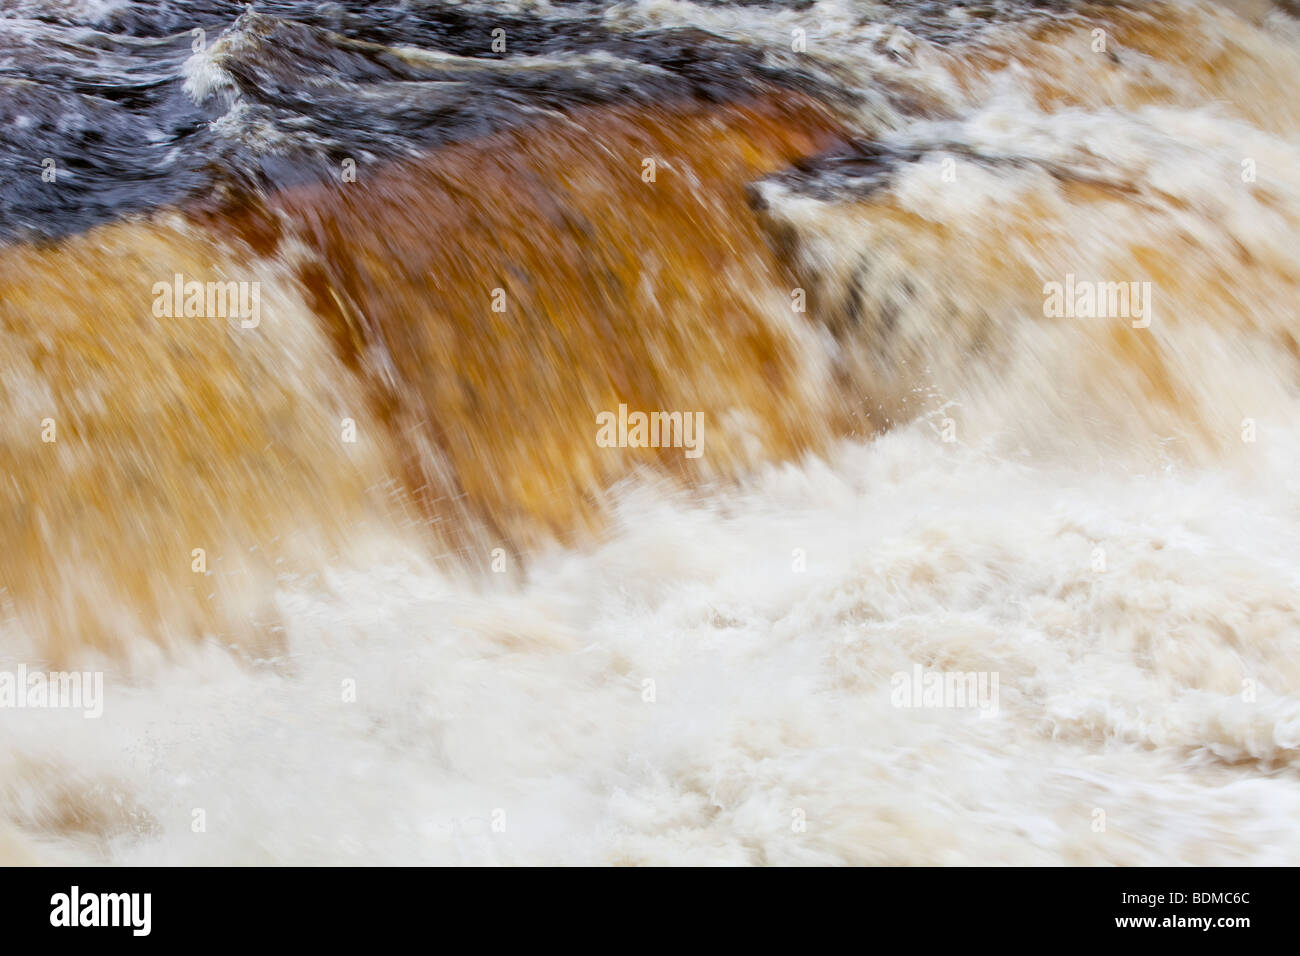 Peat staining in the river Clyde at New Lanark, Scotland, UK. - Stock Image